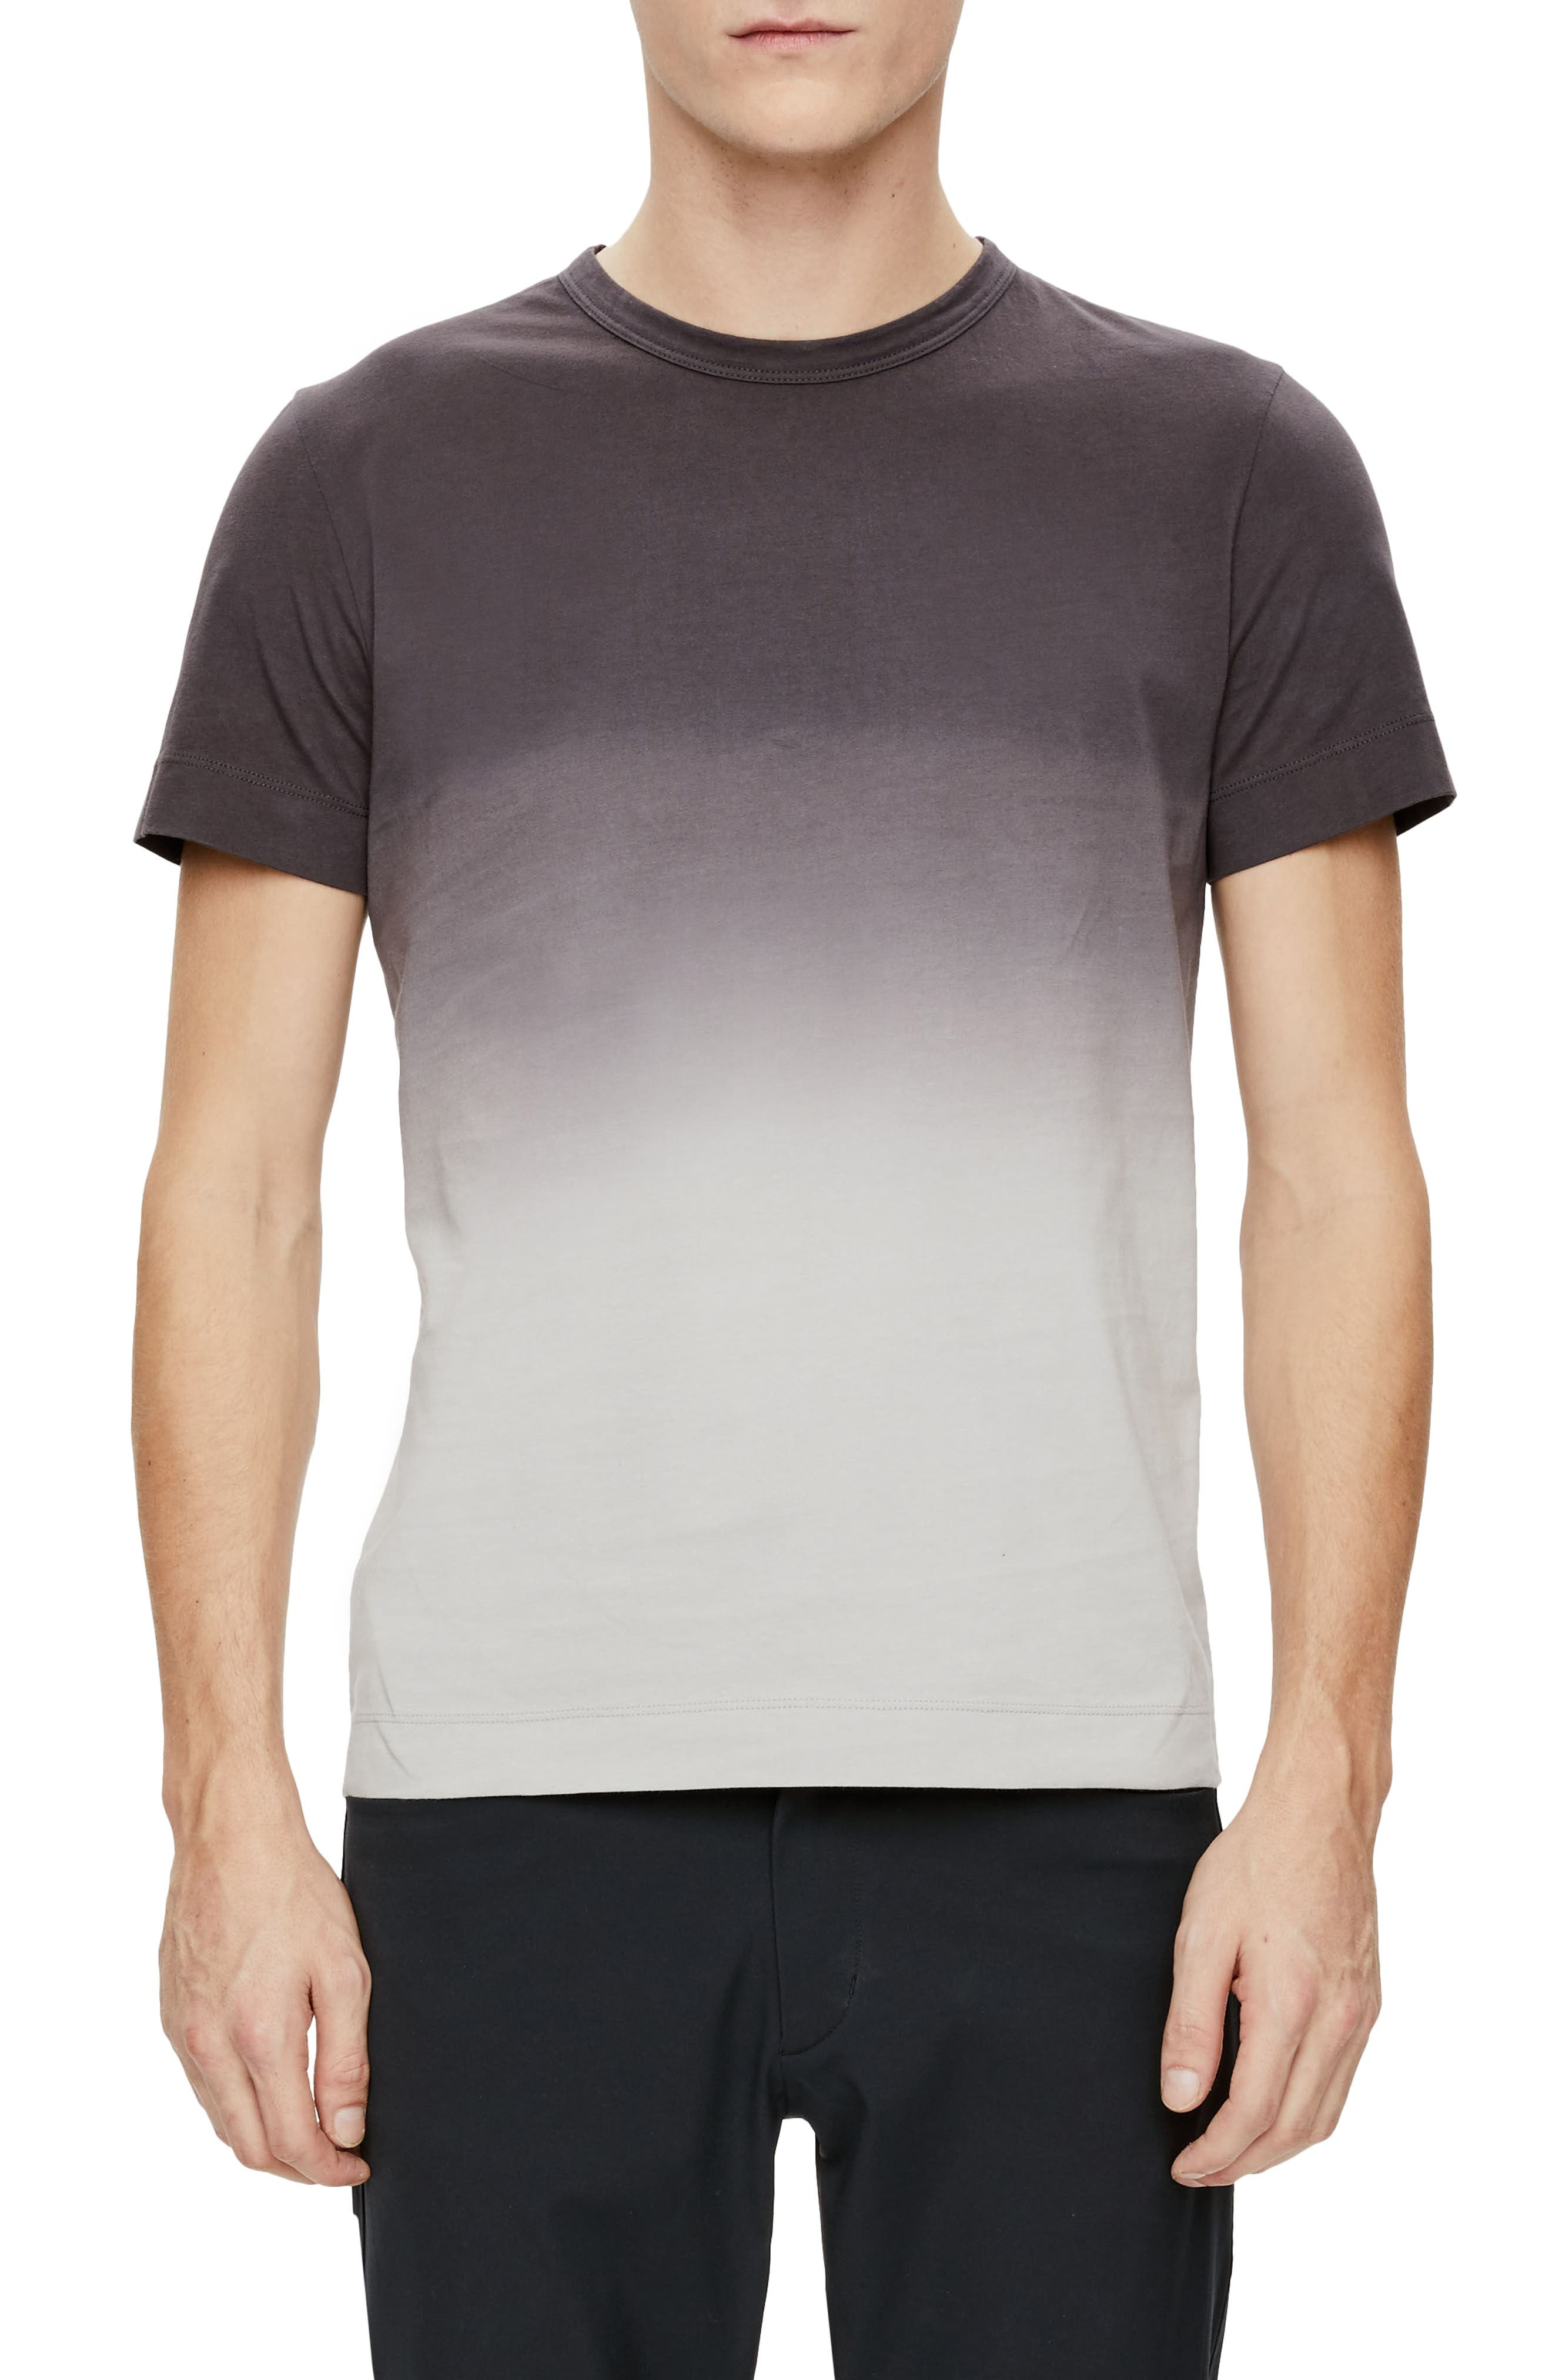 Gaskell Dip Dye Ombré T-Shirt,                             Main thumbnail 1, color,                             Ember Multi